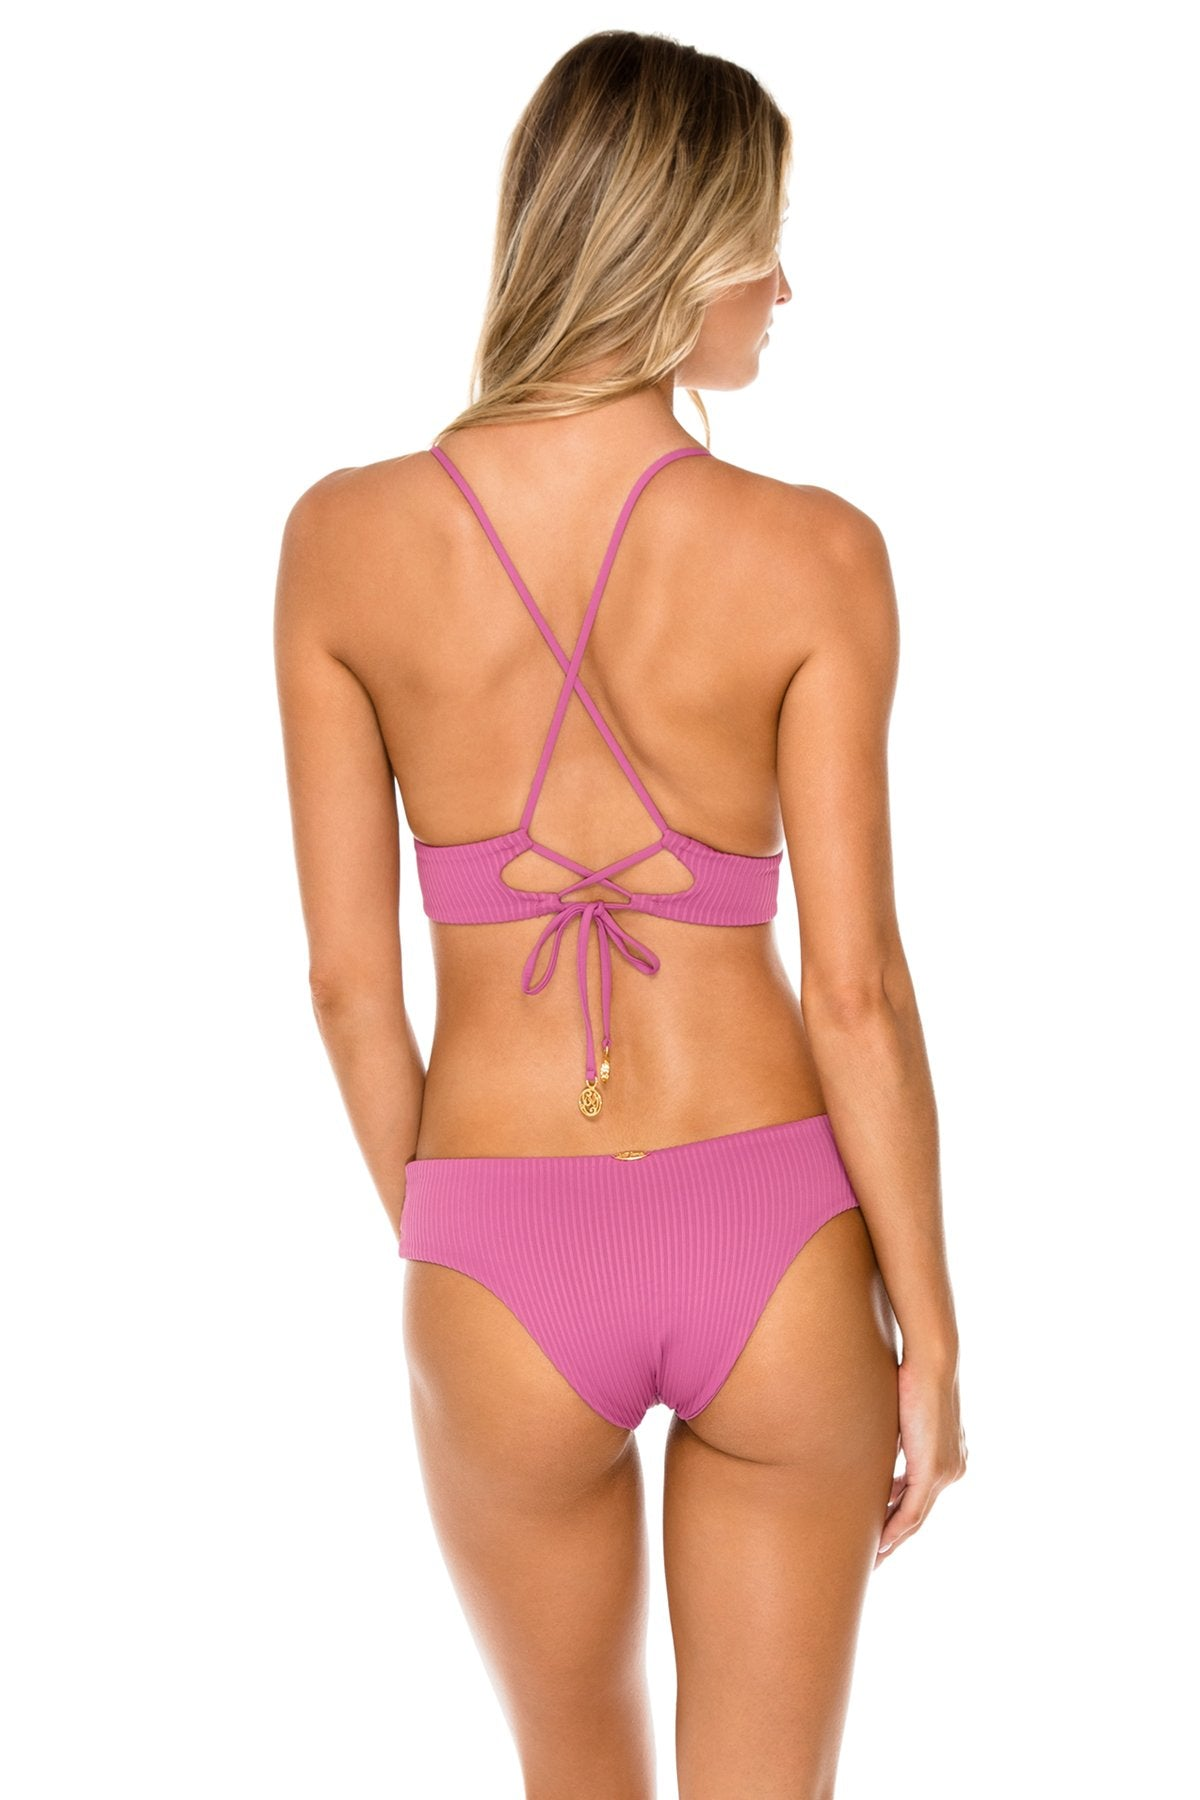 ORILLAS DEL MAR - Cross Back Bustier Top & Moderate Bottom • Frambuesa